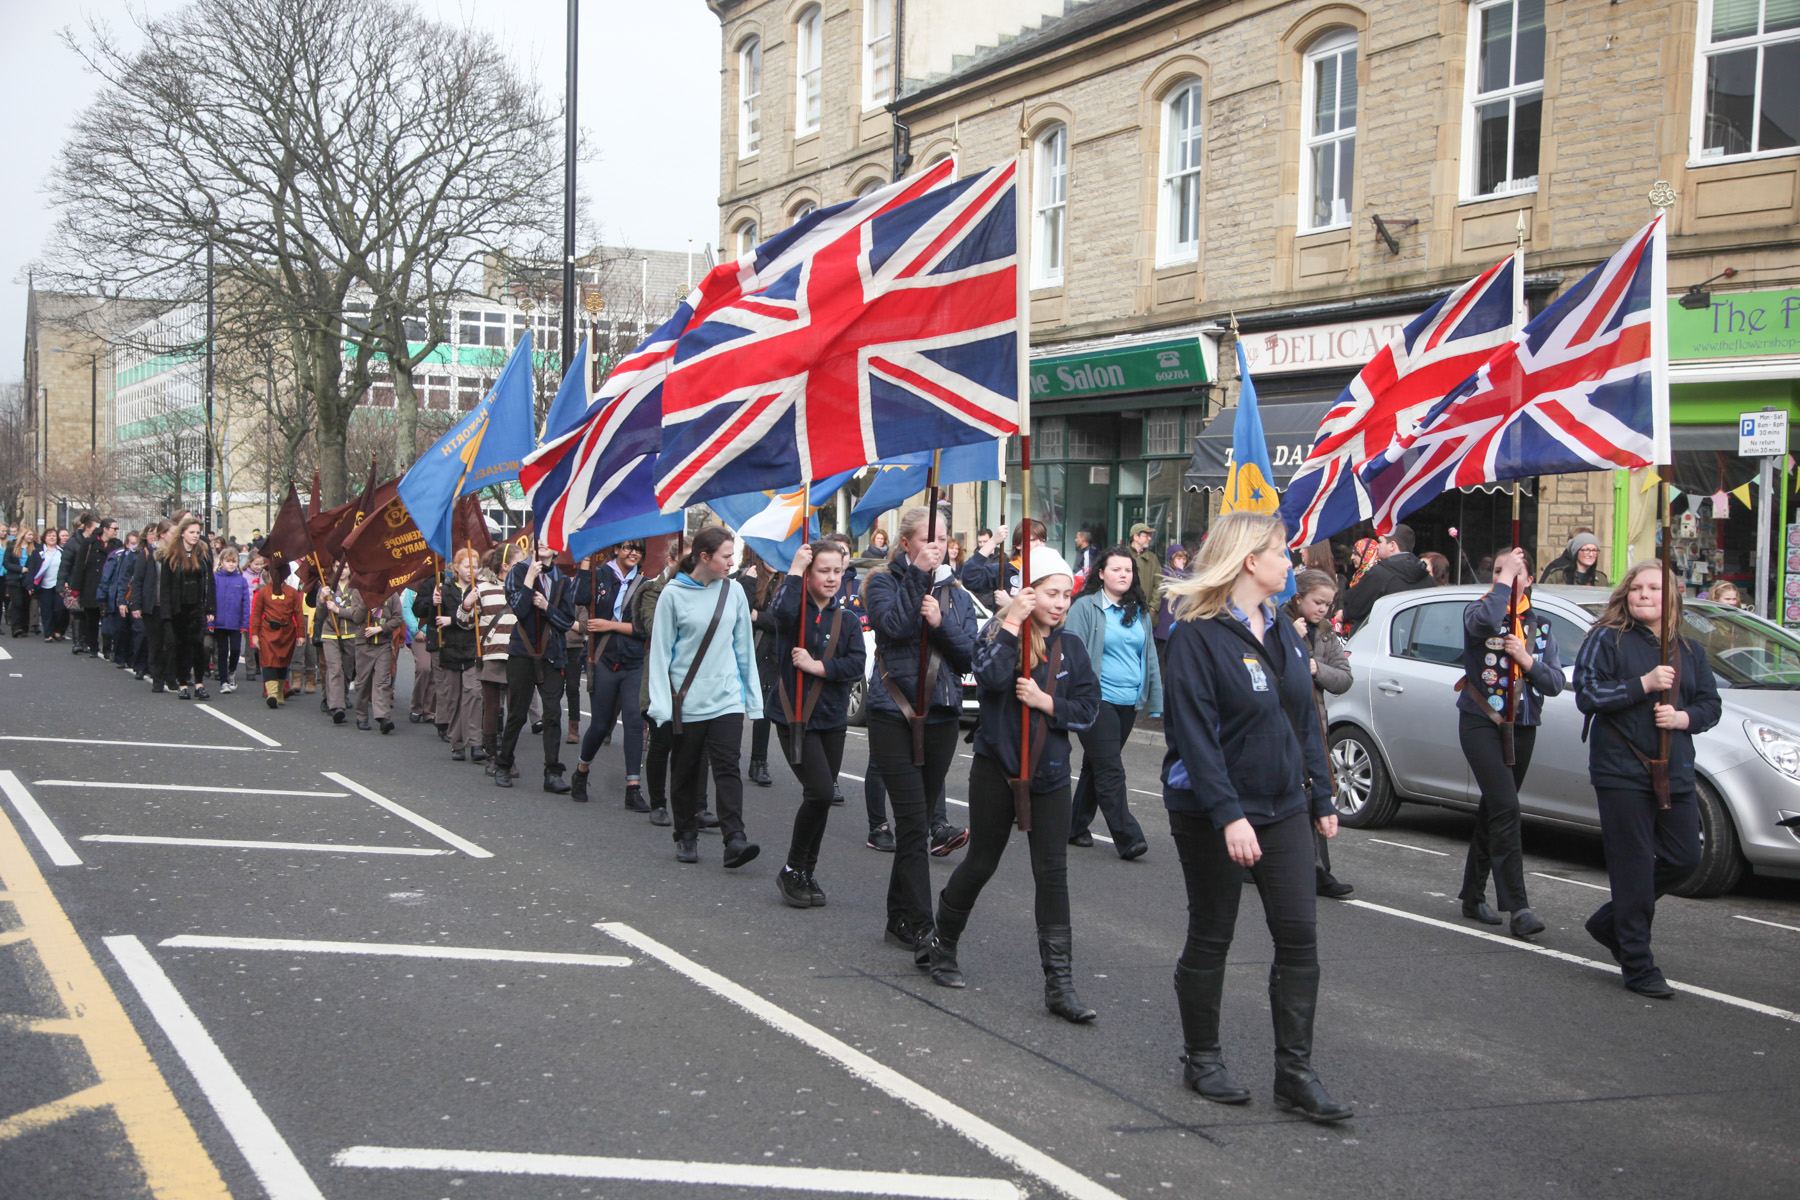 The parade makes its way through Keighley